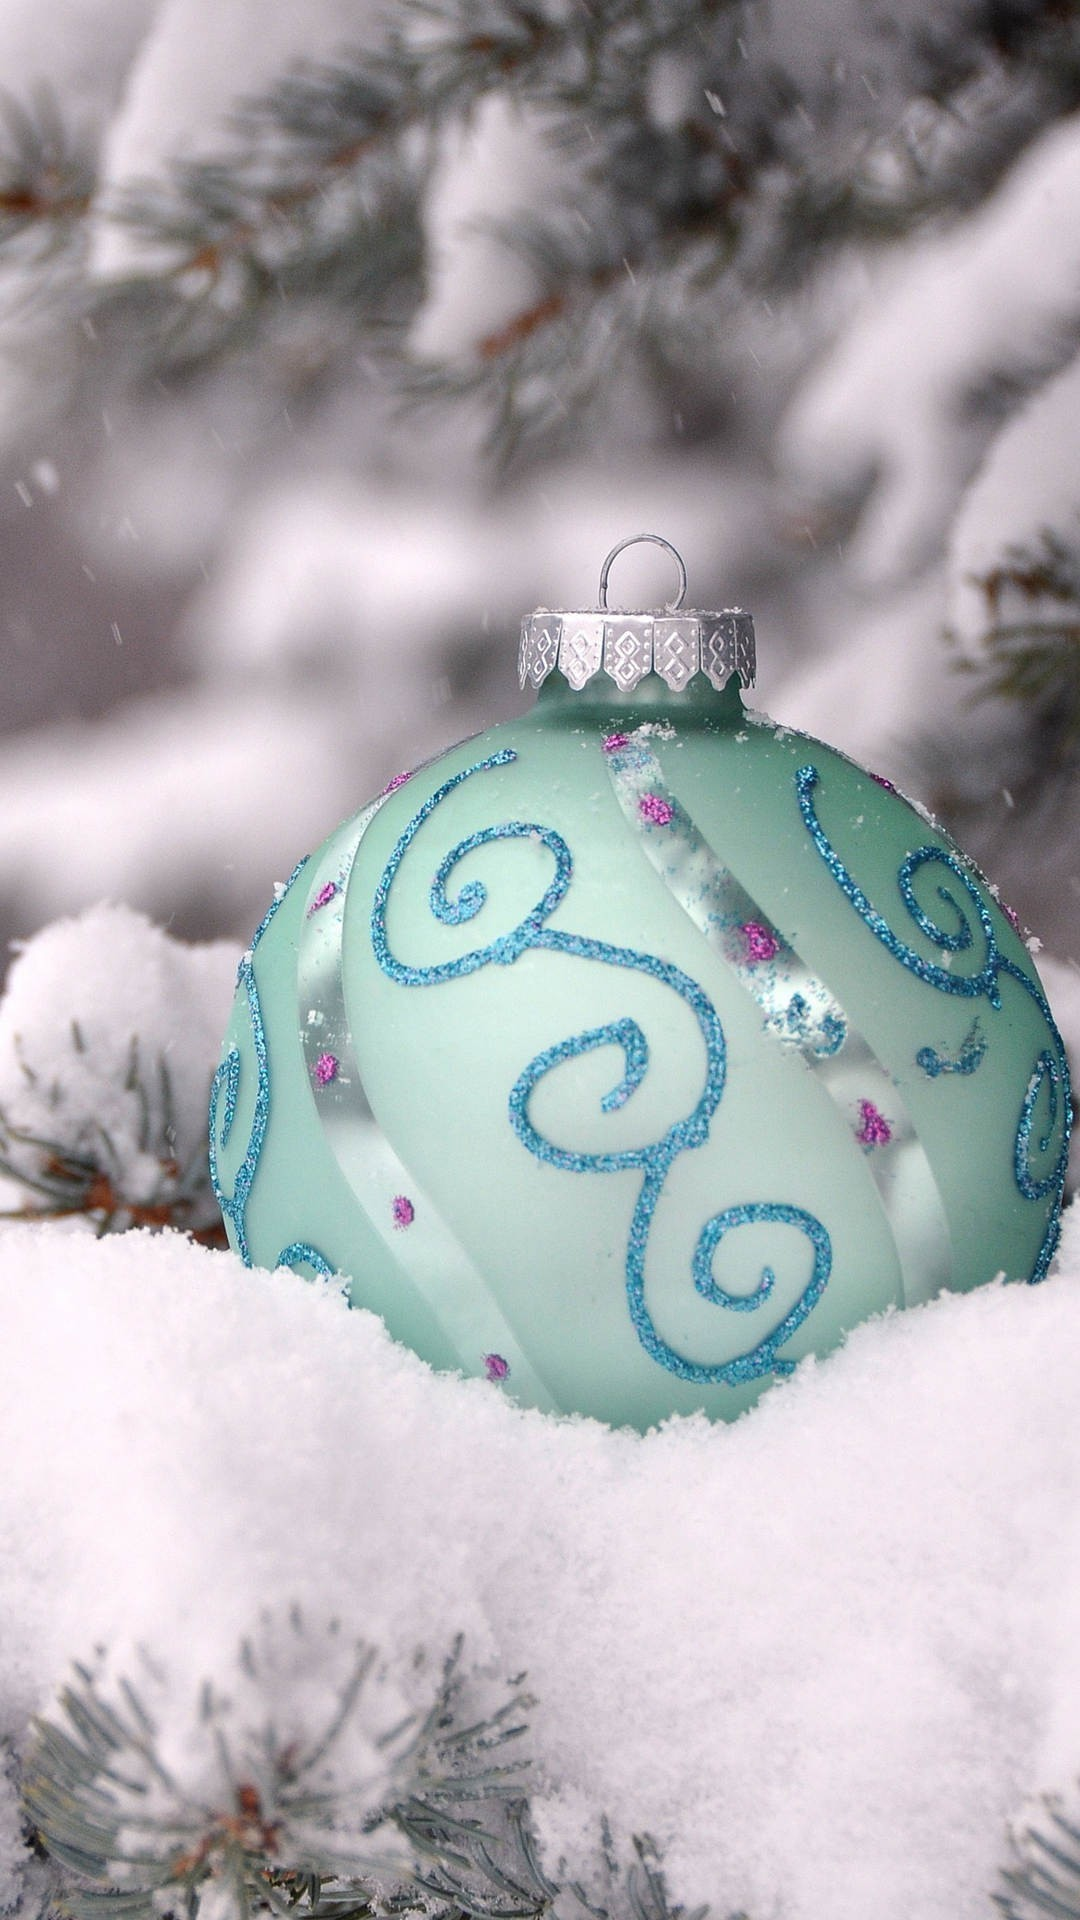 Frozen themed Christmas tree floating ornament iPhone 6 plus wallpaper –  tree, snow, closeup